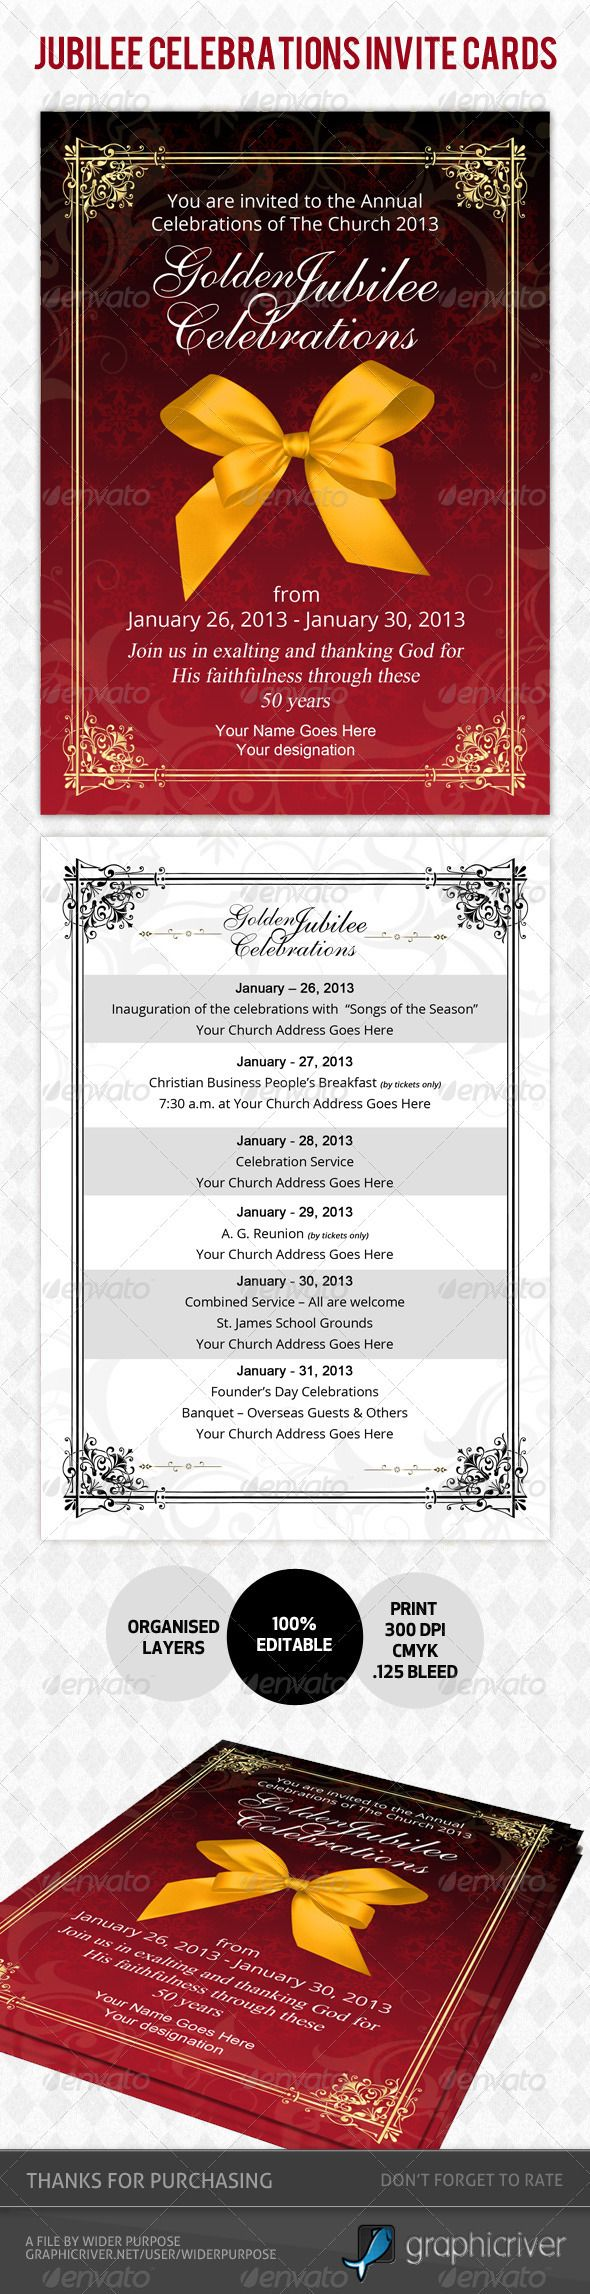 best images about posters modern wedding 17 best images about posters modern wedding invitations search and invitation cards